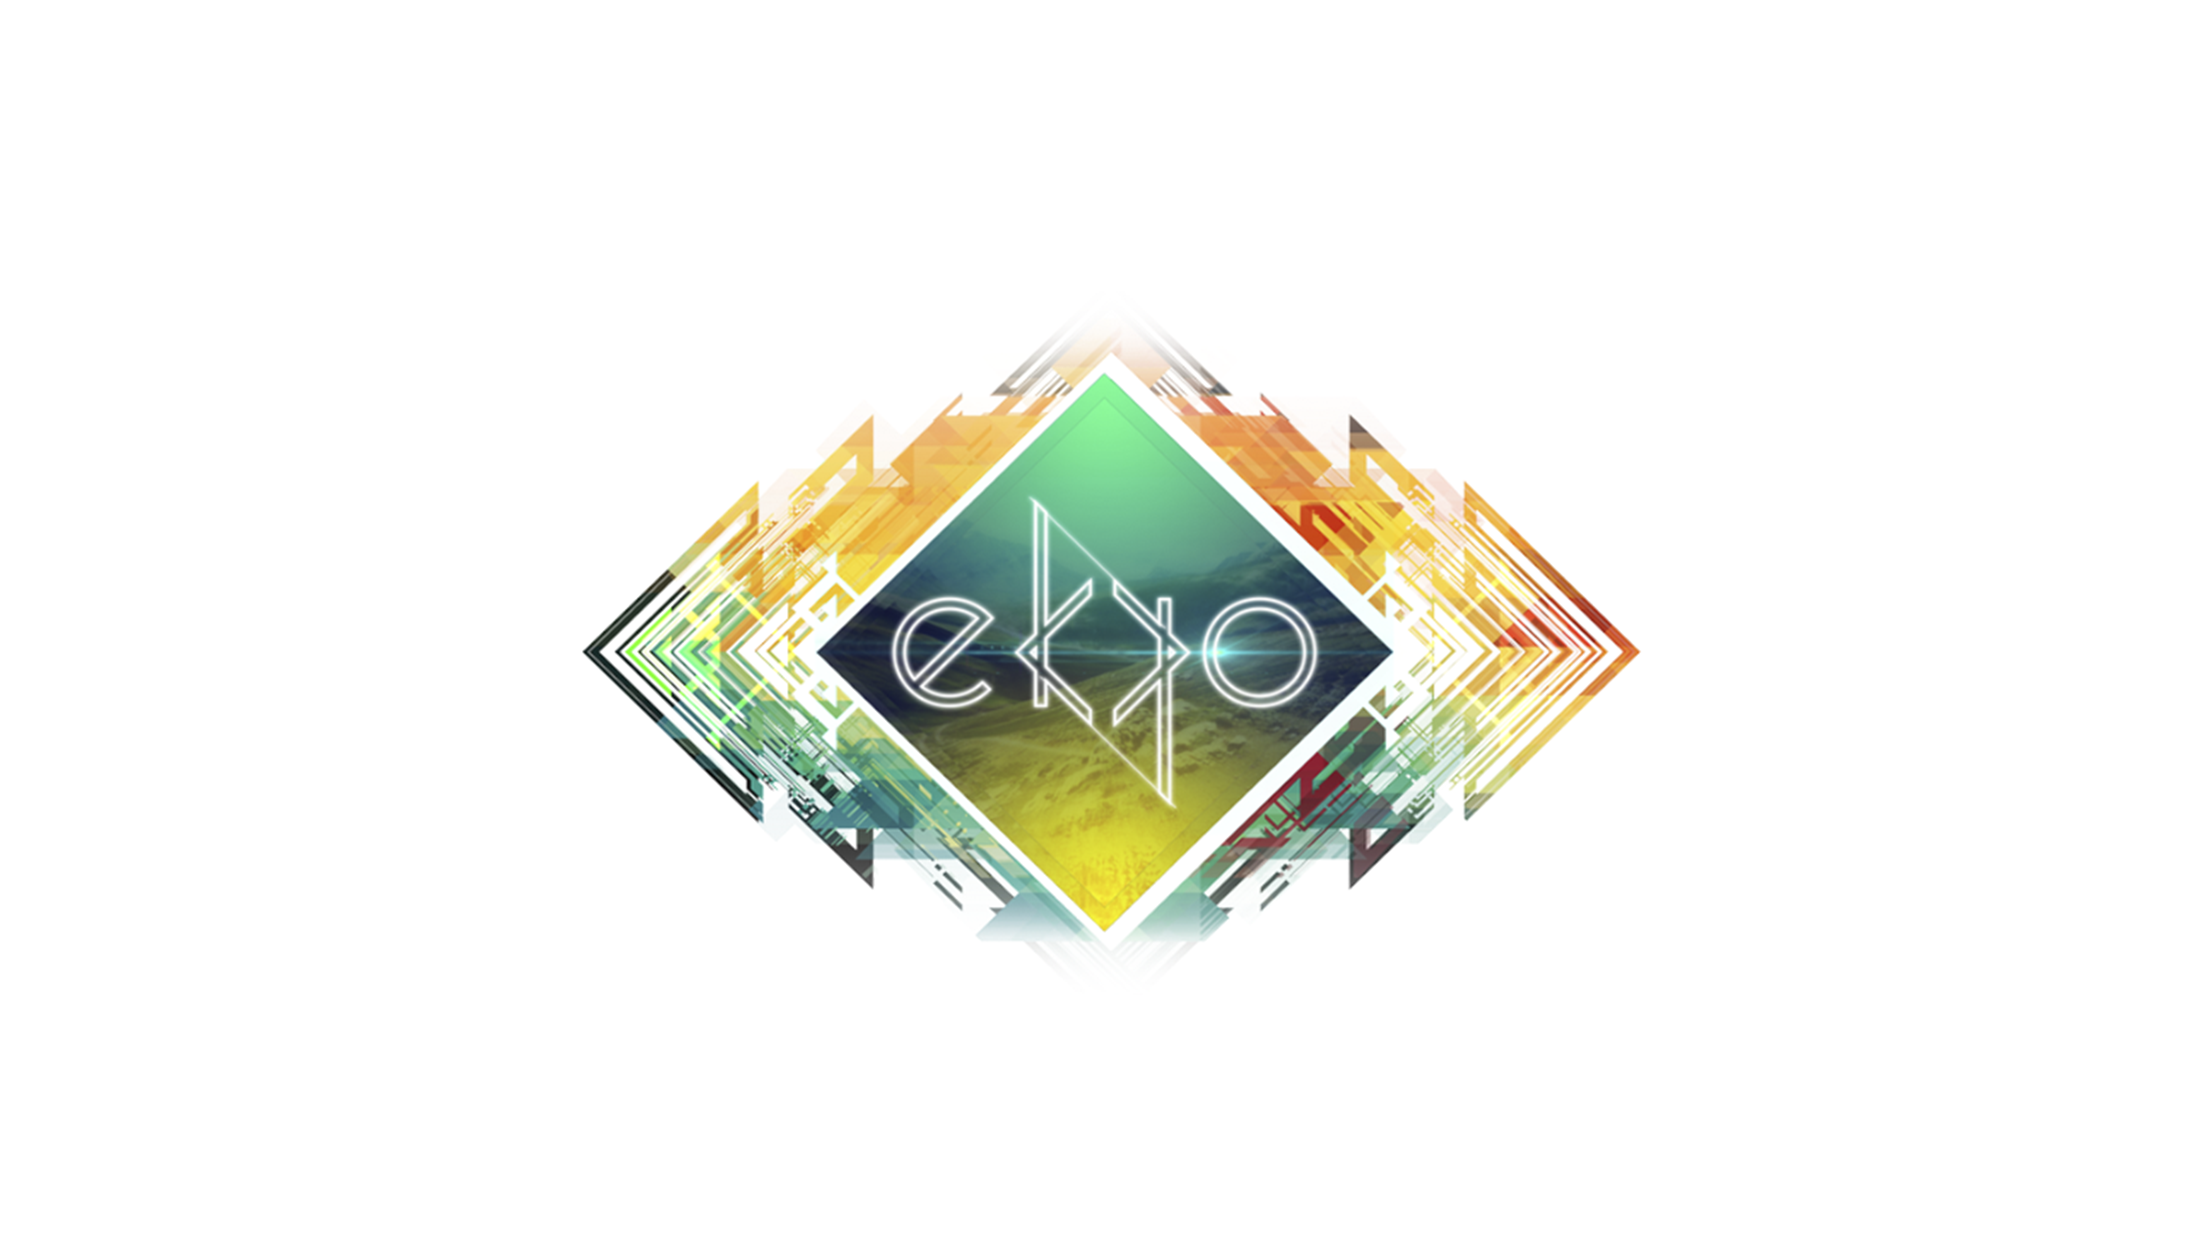 Ekko: Occlude the void